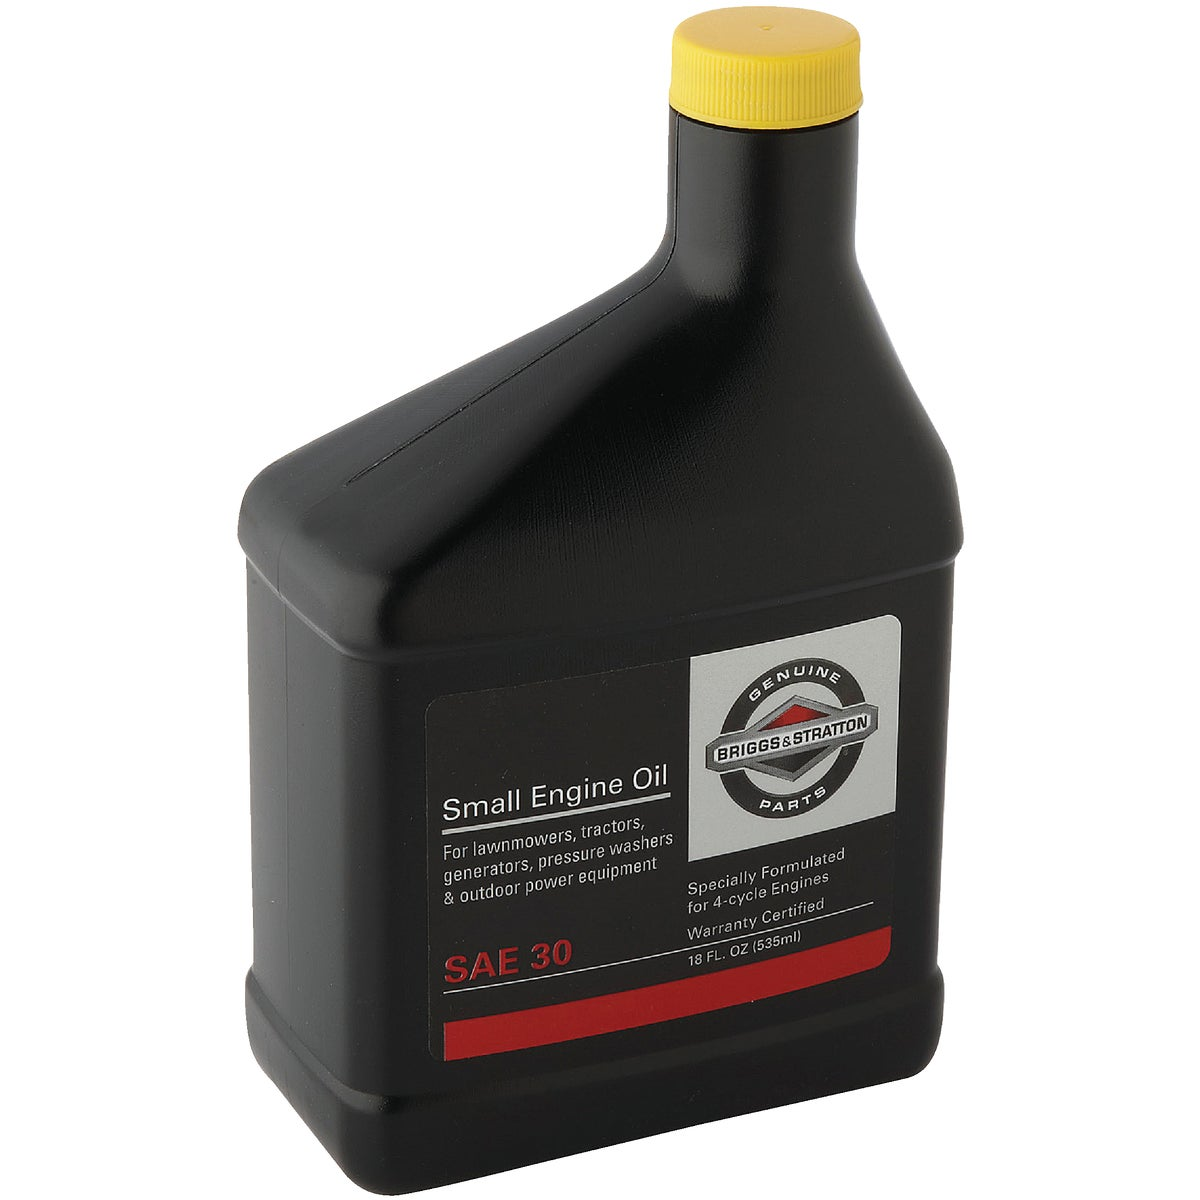 18OZ 4-CYCLE 30W OIL - 100005DIB by Centrl Pwr Sys/brigg